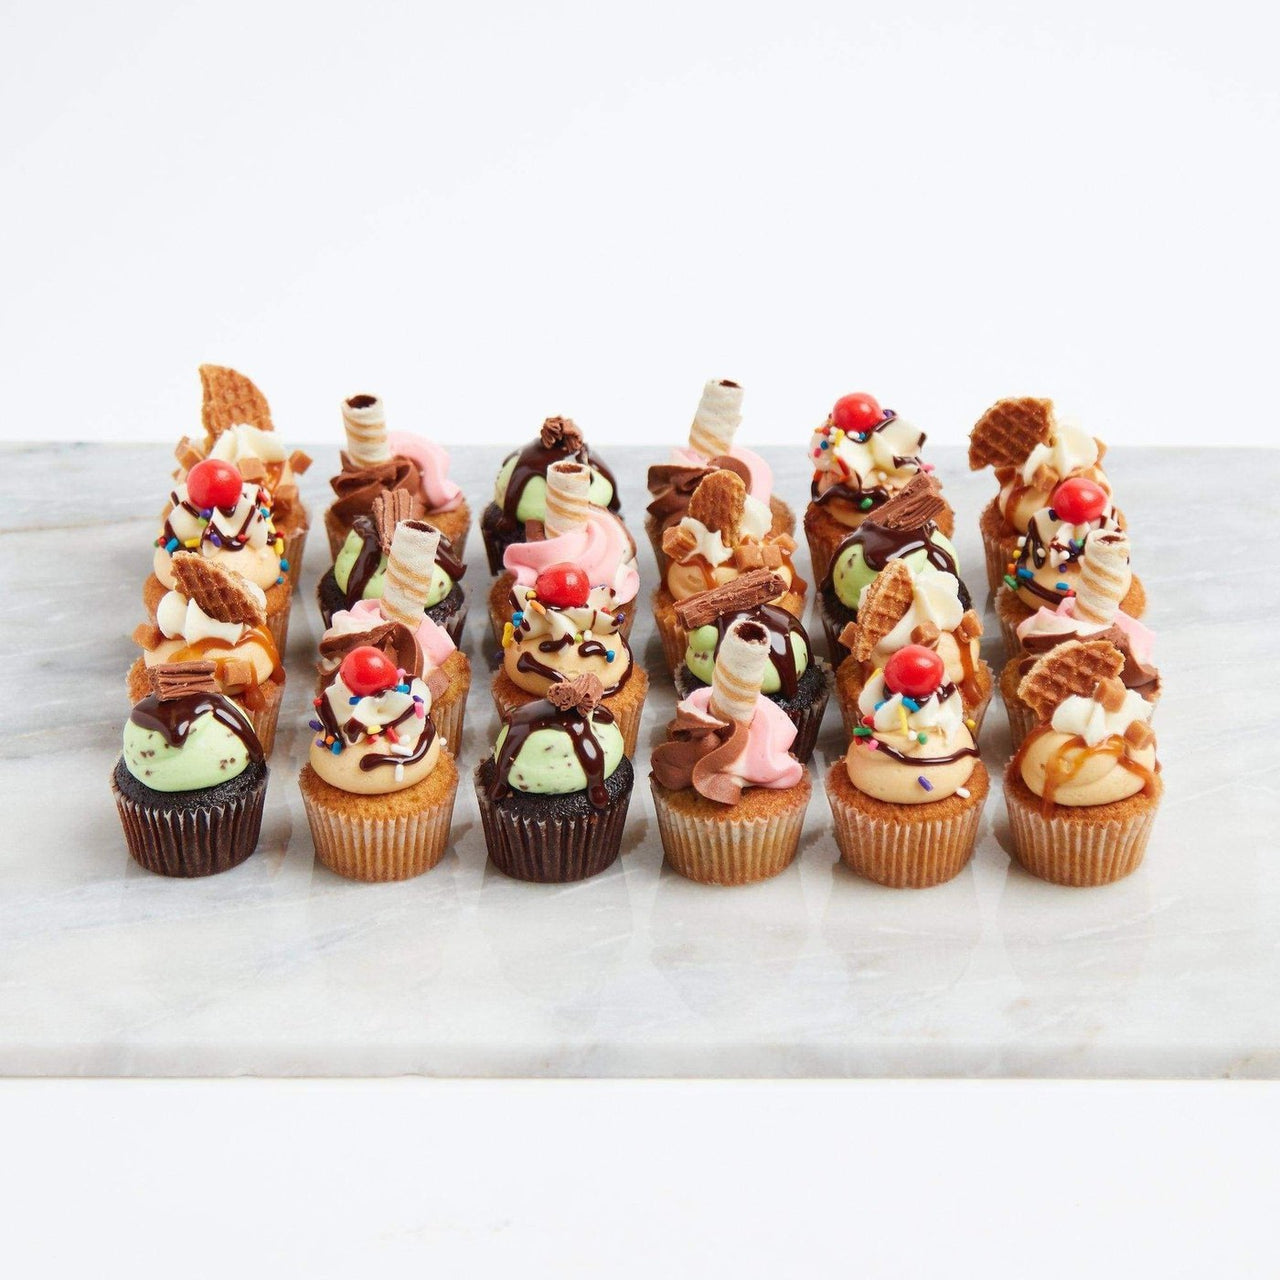 Ice Cream Shop Cupcakes